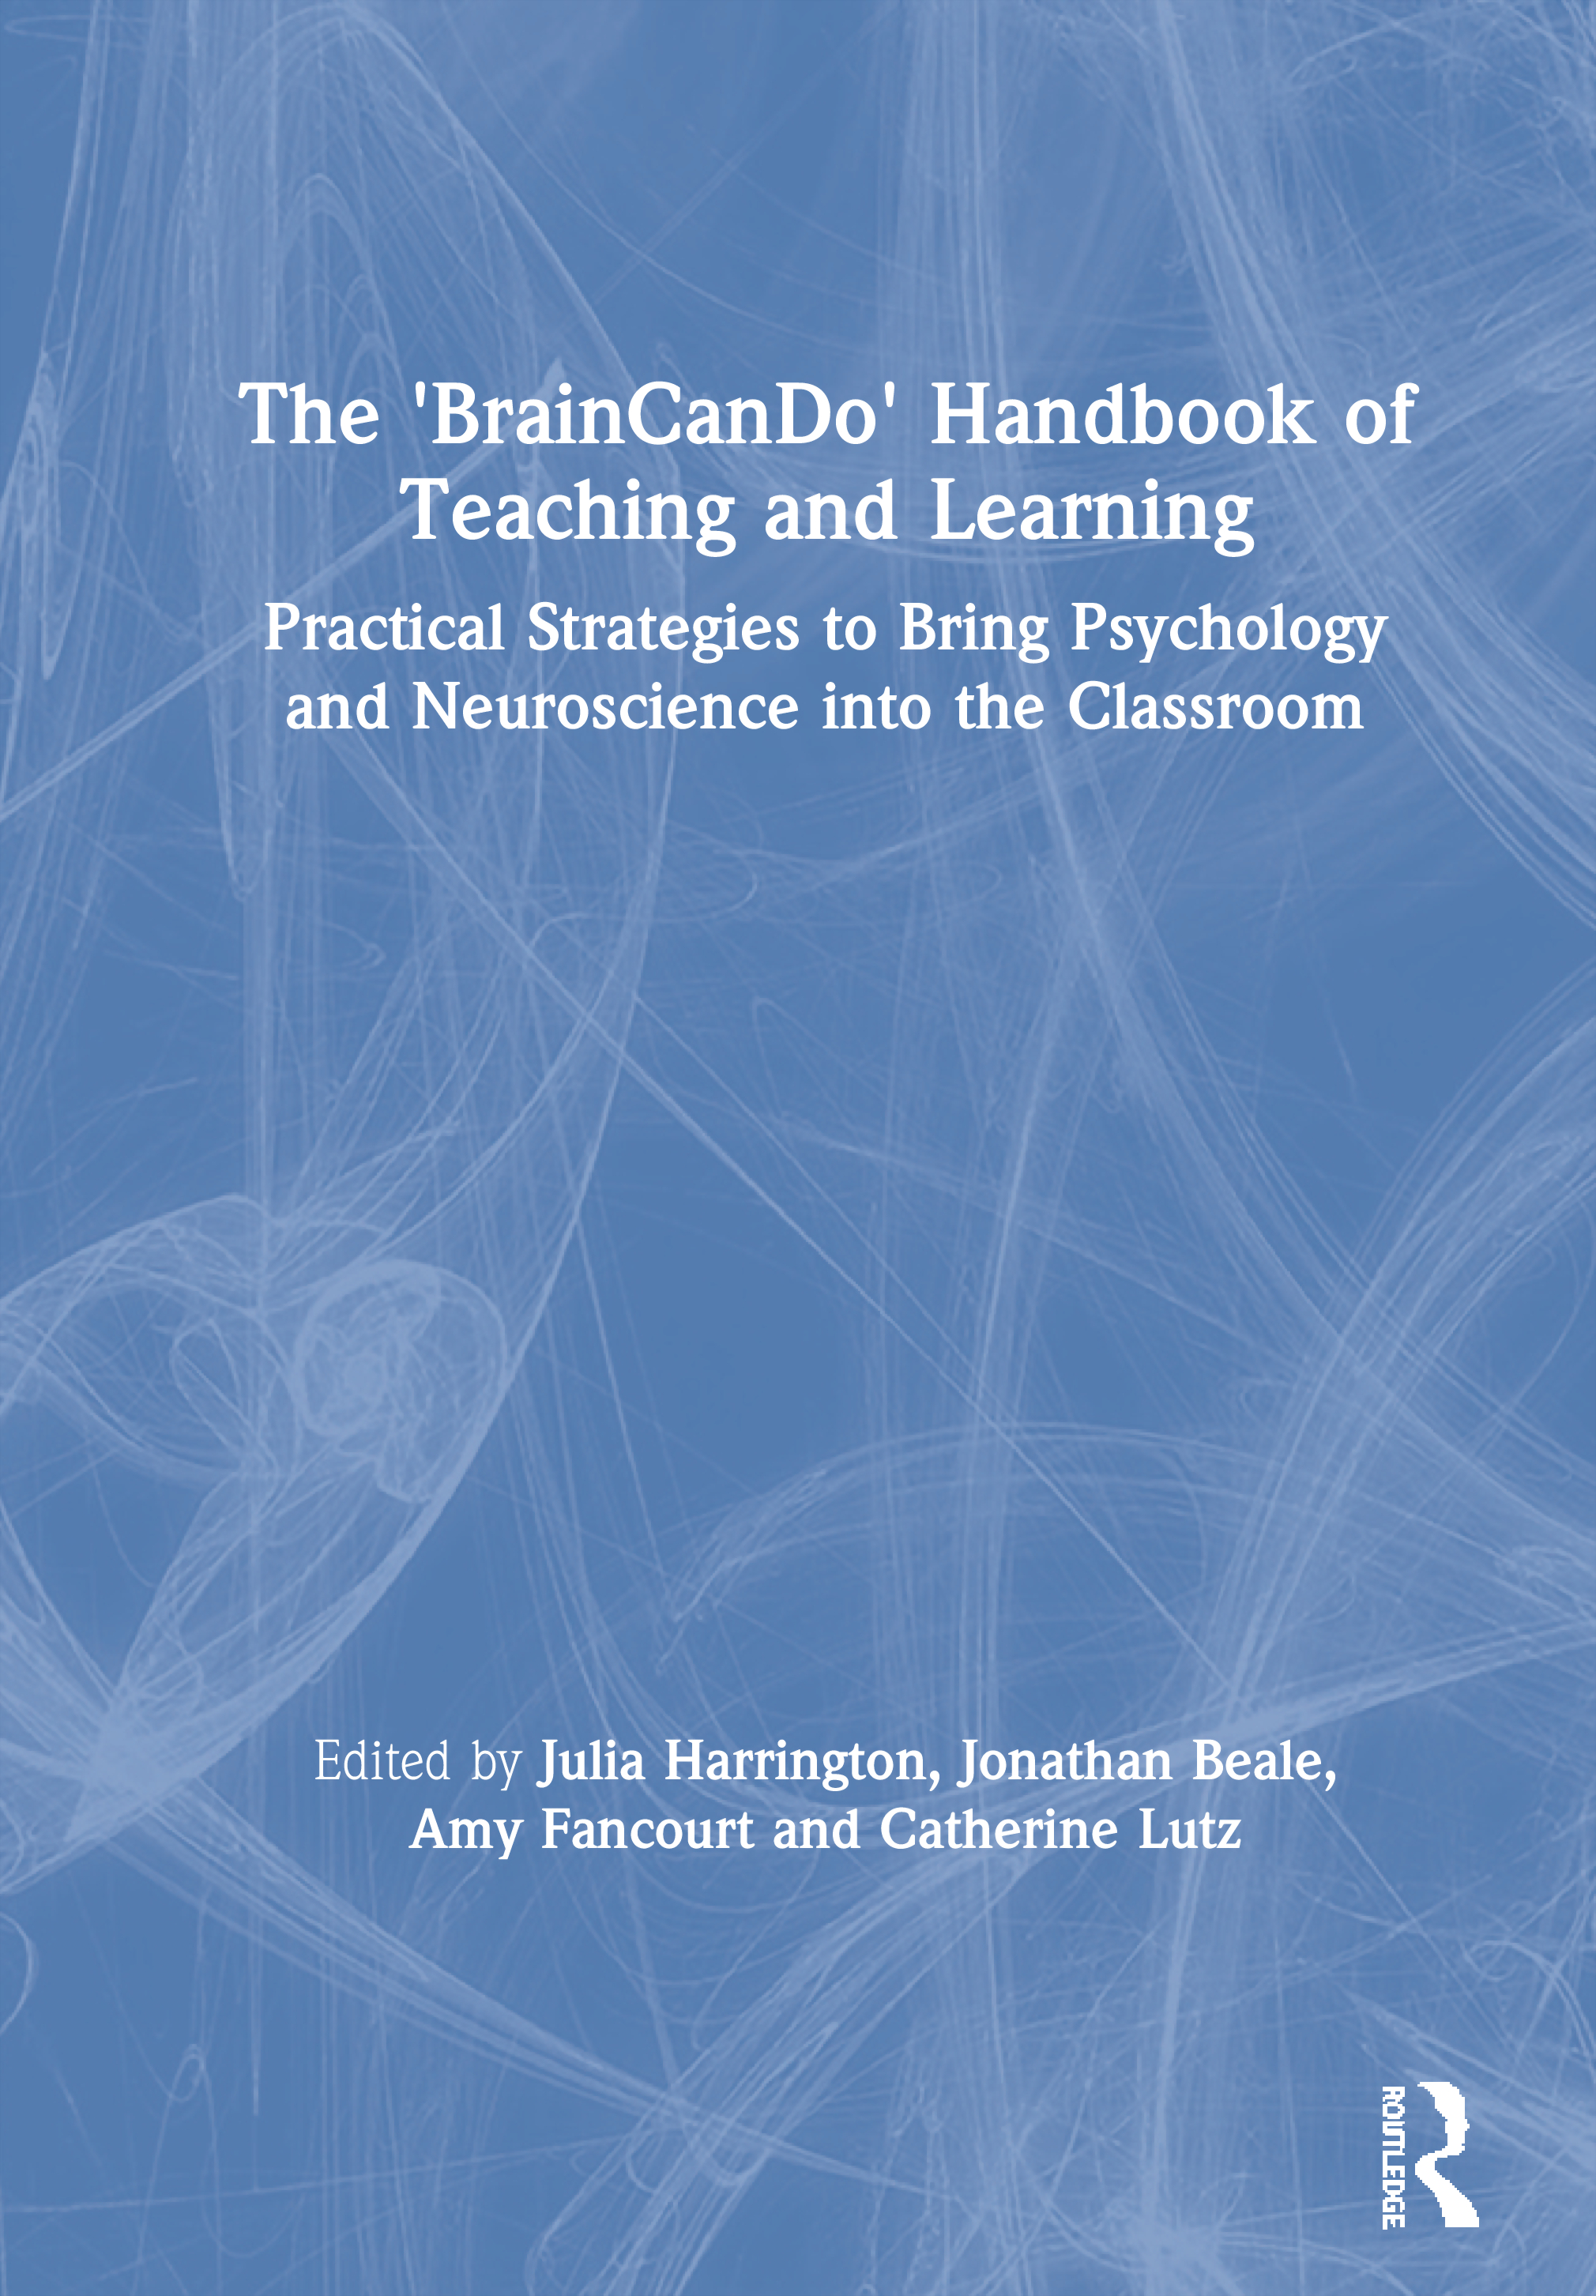 The 'BrainCanDo' Handbook of Teaching and Learning: Practical Strategies to Bring Psychology and Neuroscience into the Classroom, 1st Edition (Paperback) book cover